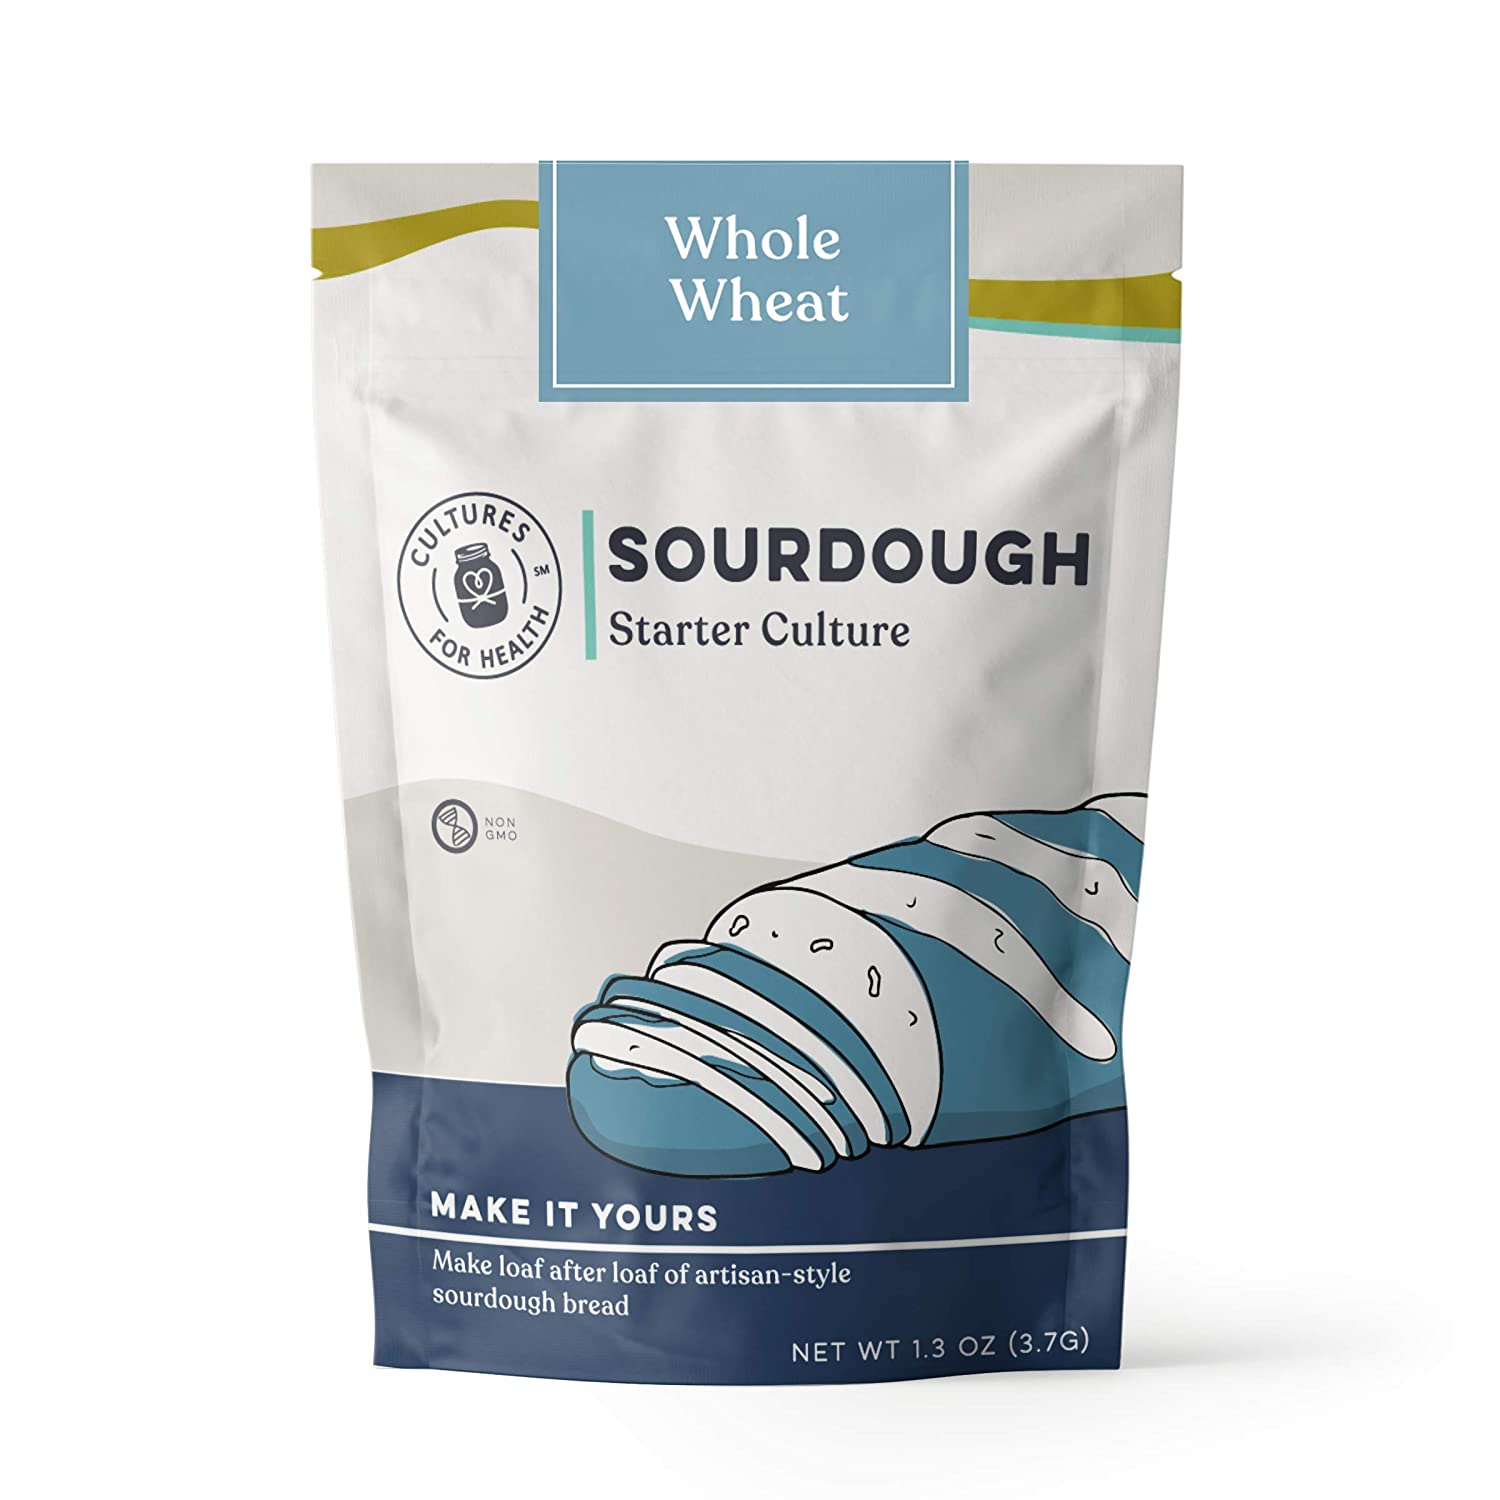 Whole Wheat Sourdough Starter Culture | Cultures for Health | Homemade, healthy, artisan, digestible bread | Heirloom, non-GMO